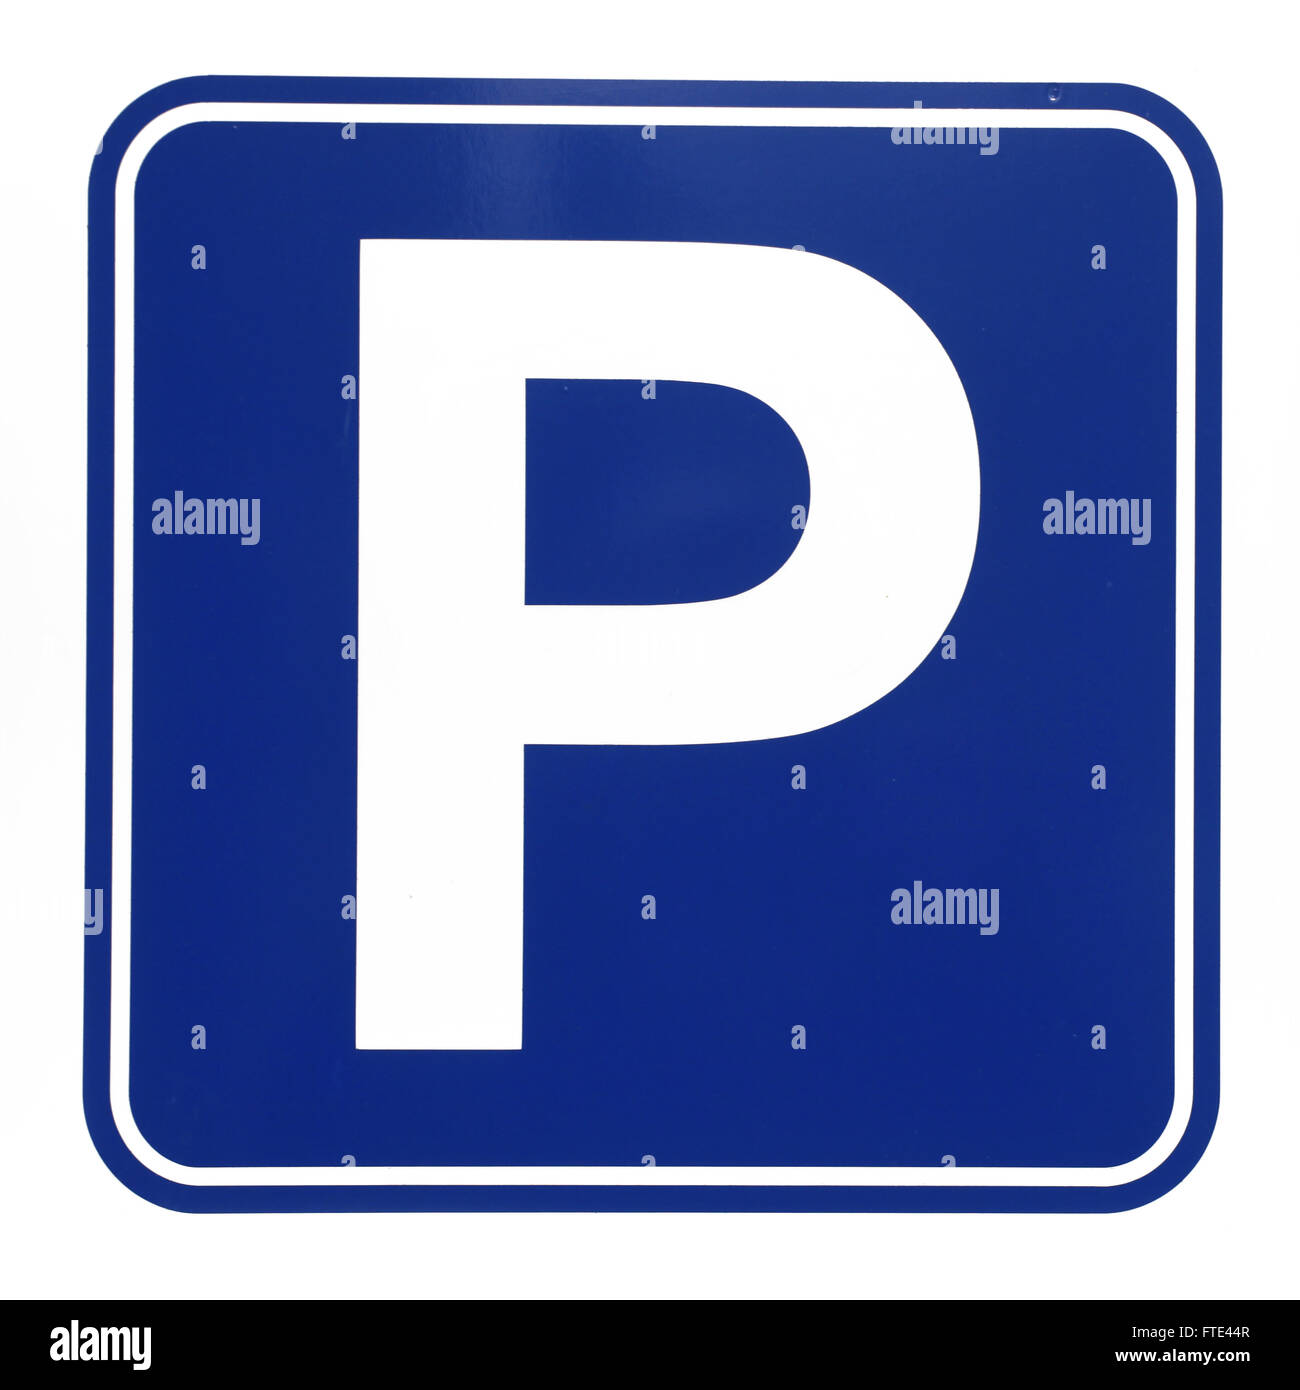 Location parking sign illustration sur fond blanc Photo Stock